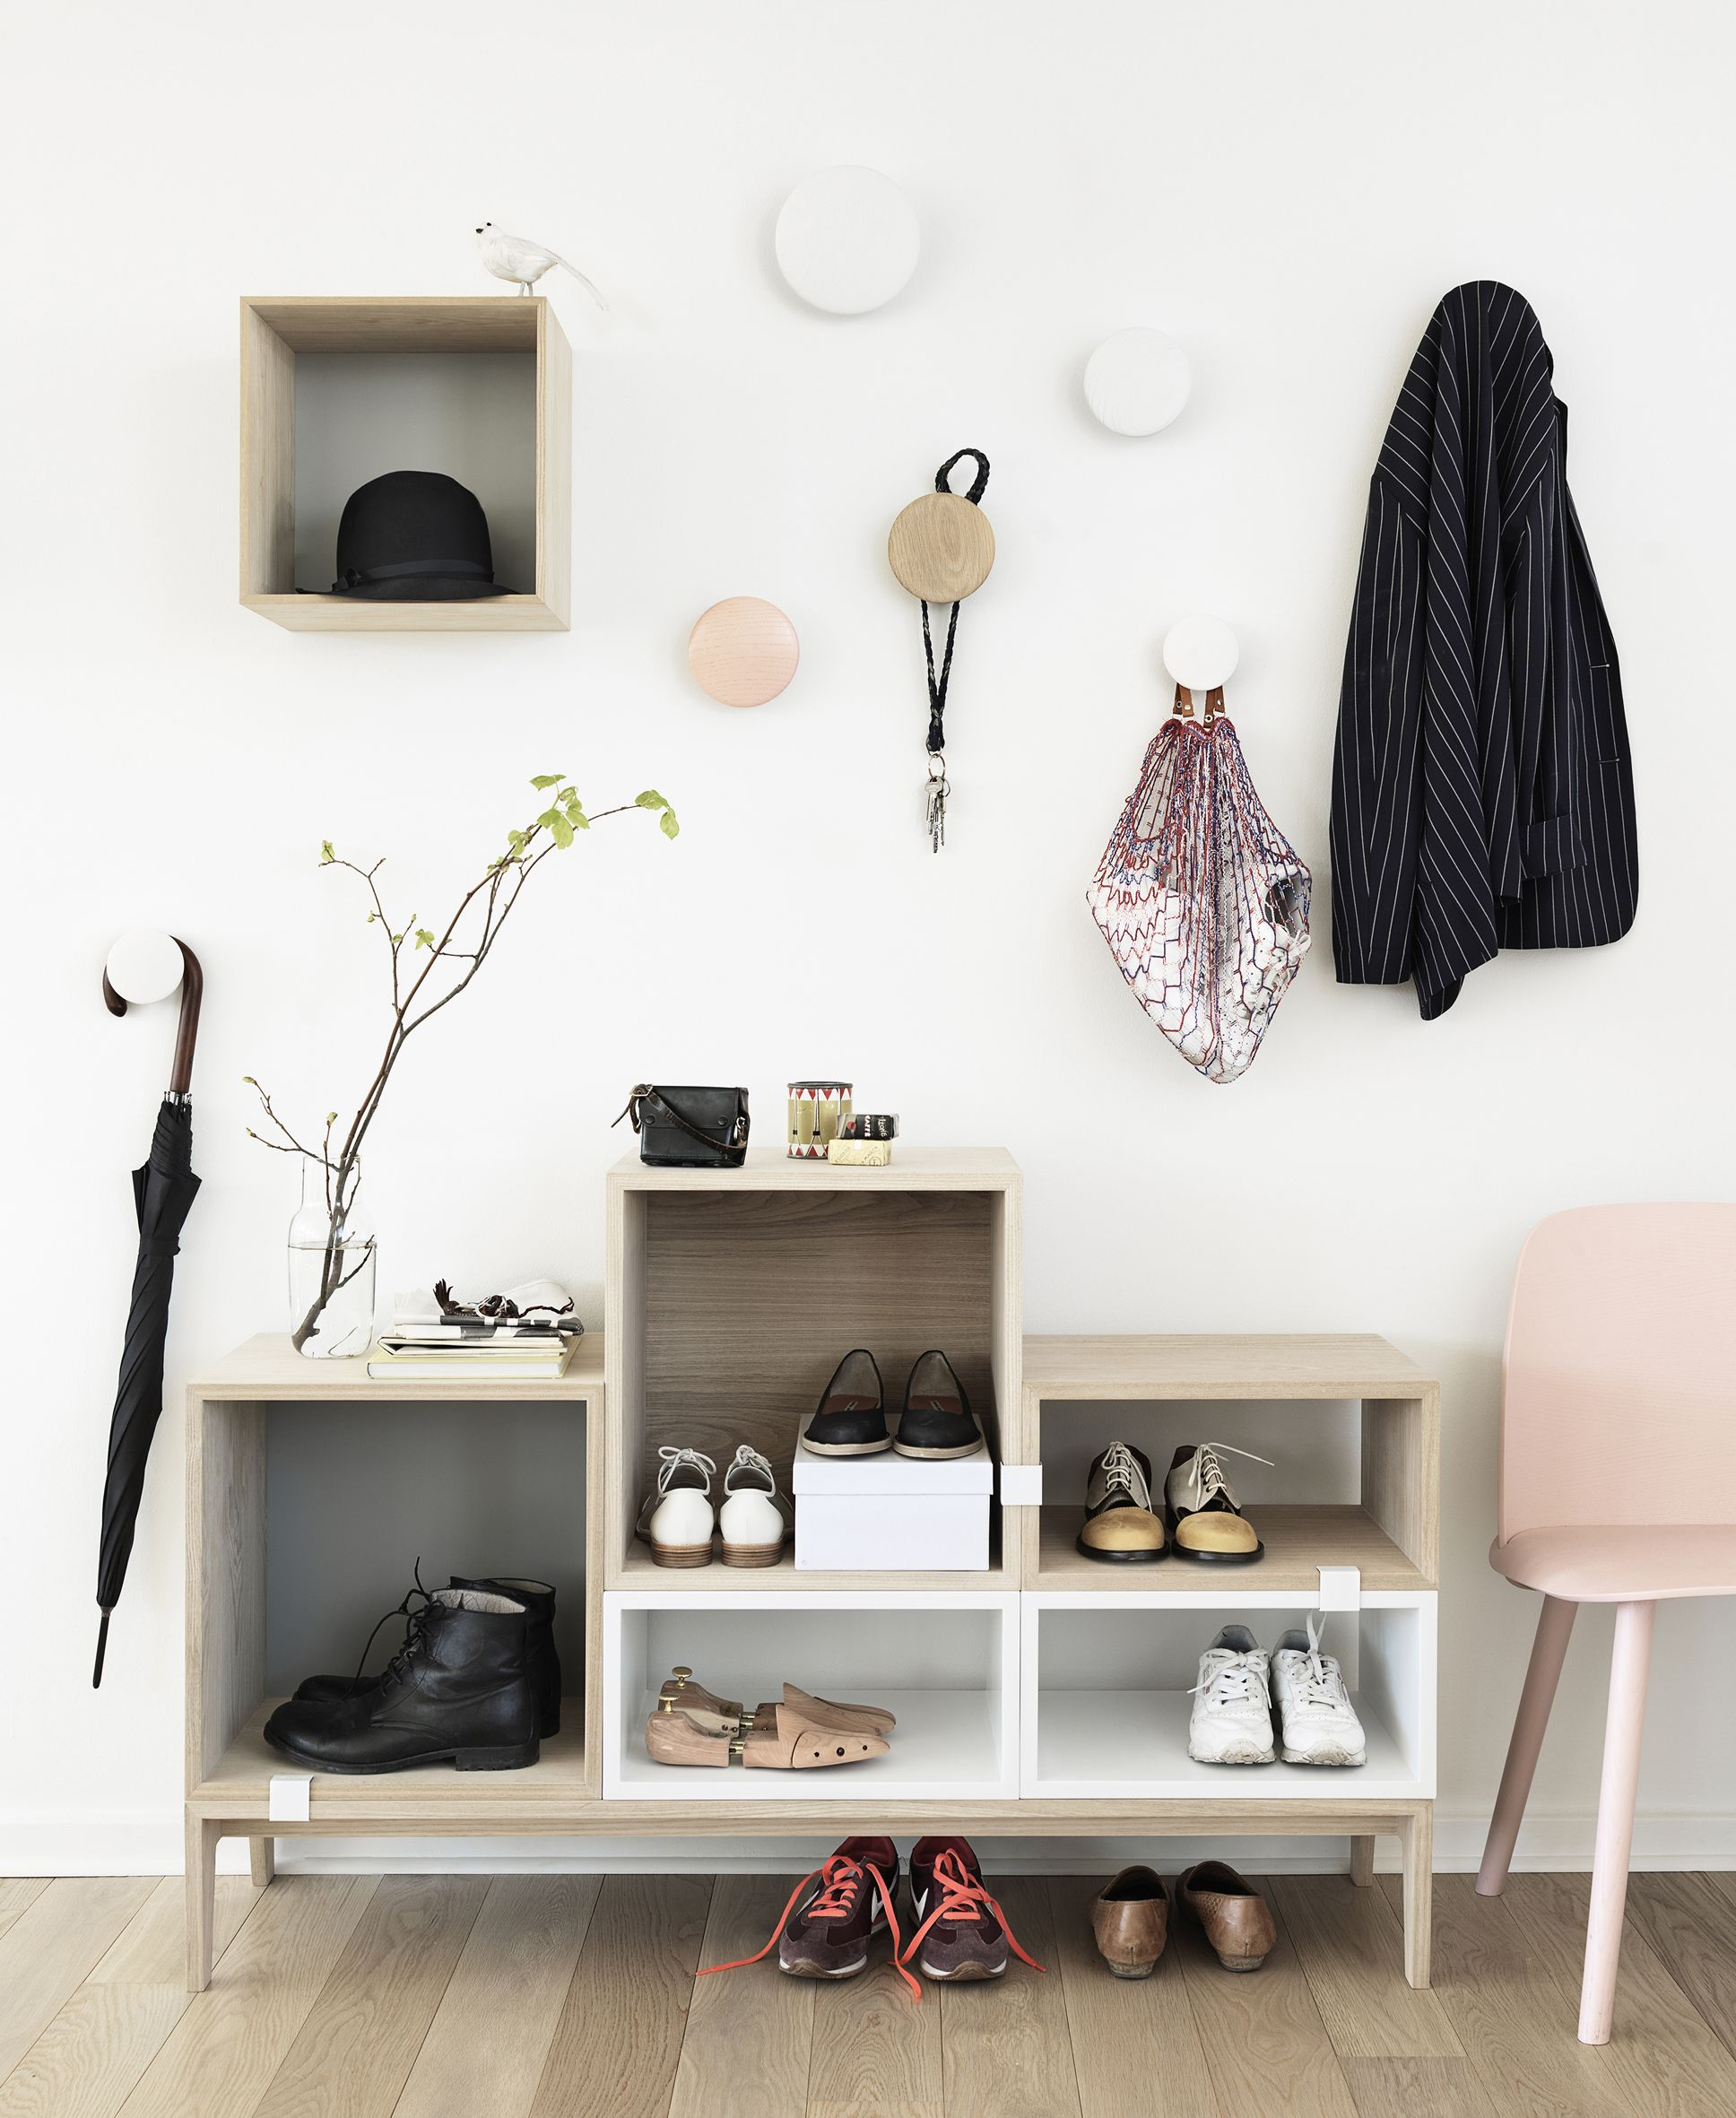 13 Creative Ways To Organise Your Shoes, Inspired By Pinterest